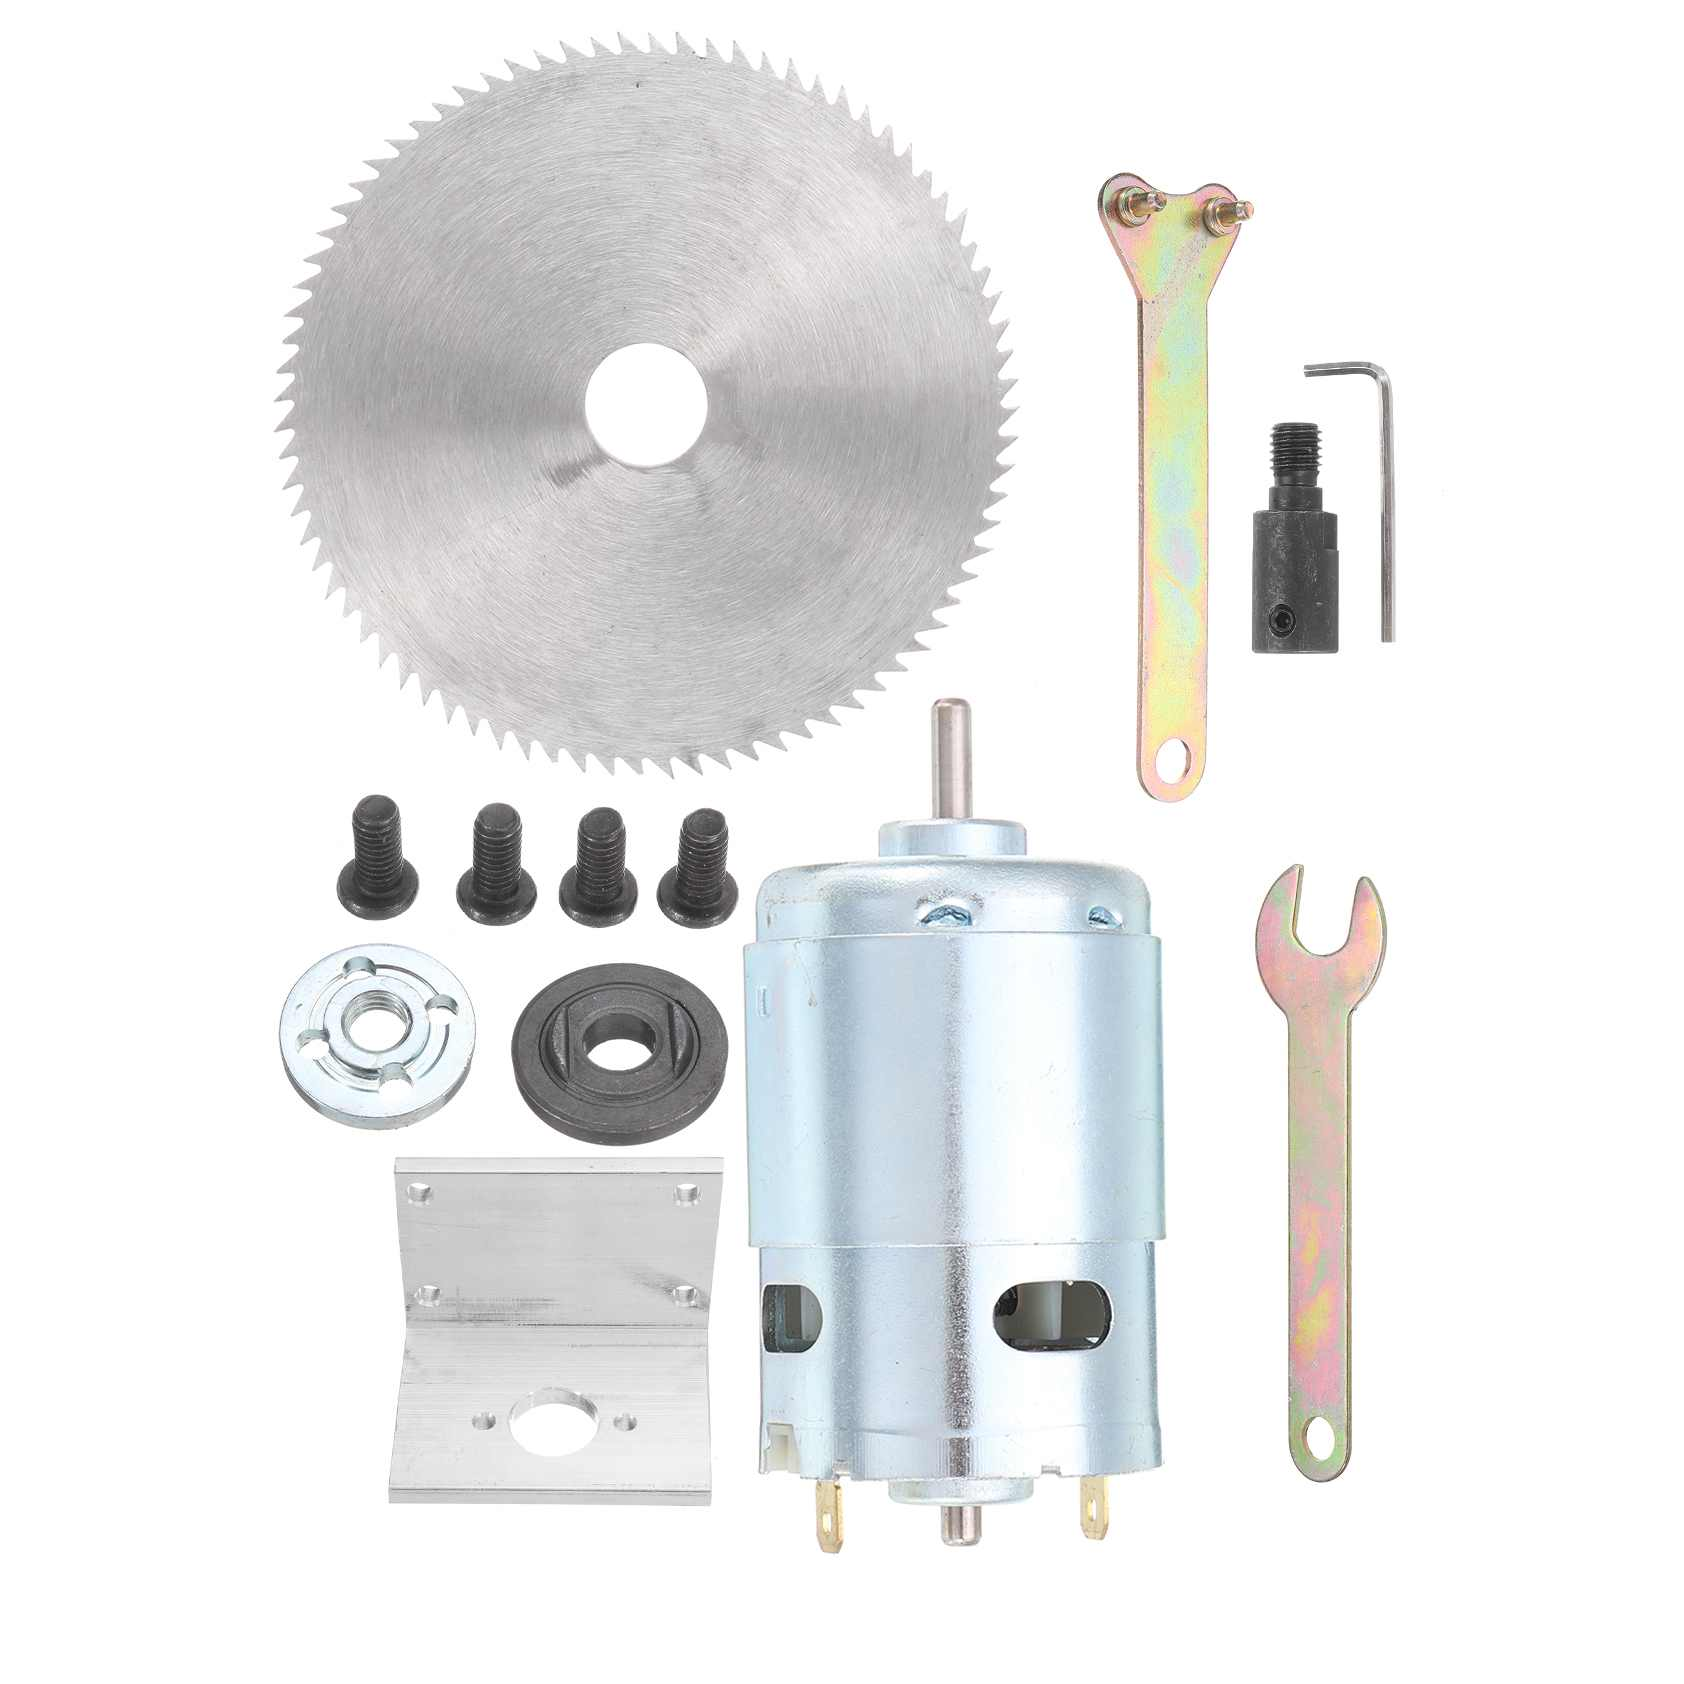 Kit Blade Ball For Press Woodworking And Saw Bearing With Mounting DC Lathe 24V Saw Bracket Table 12 895 Cutting Motor